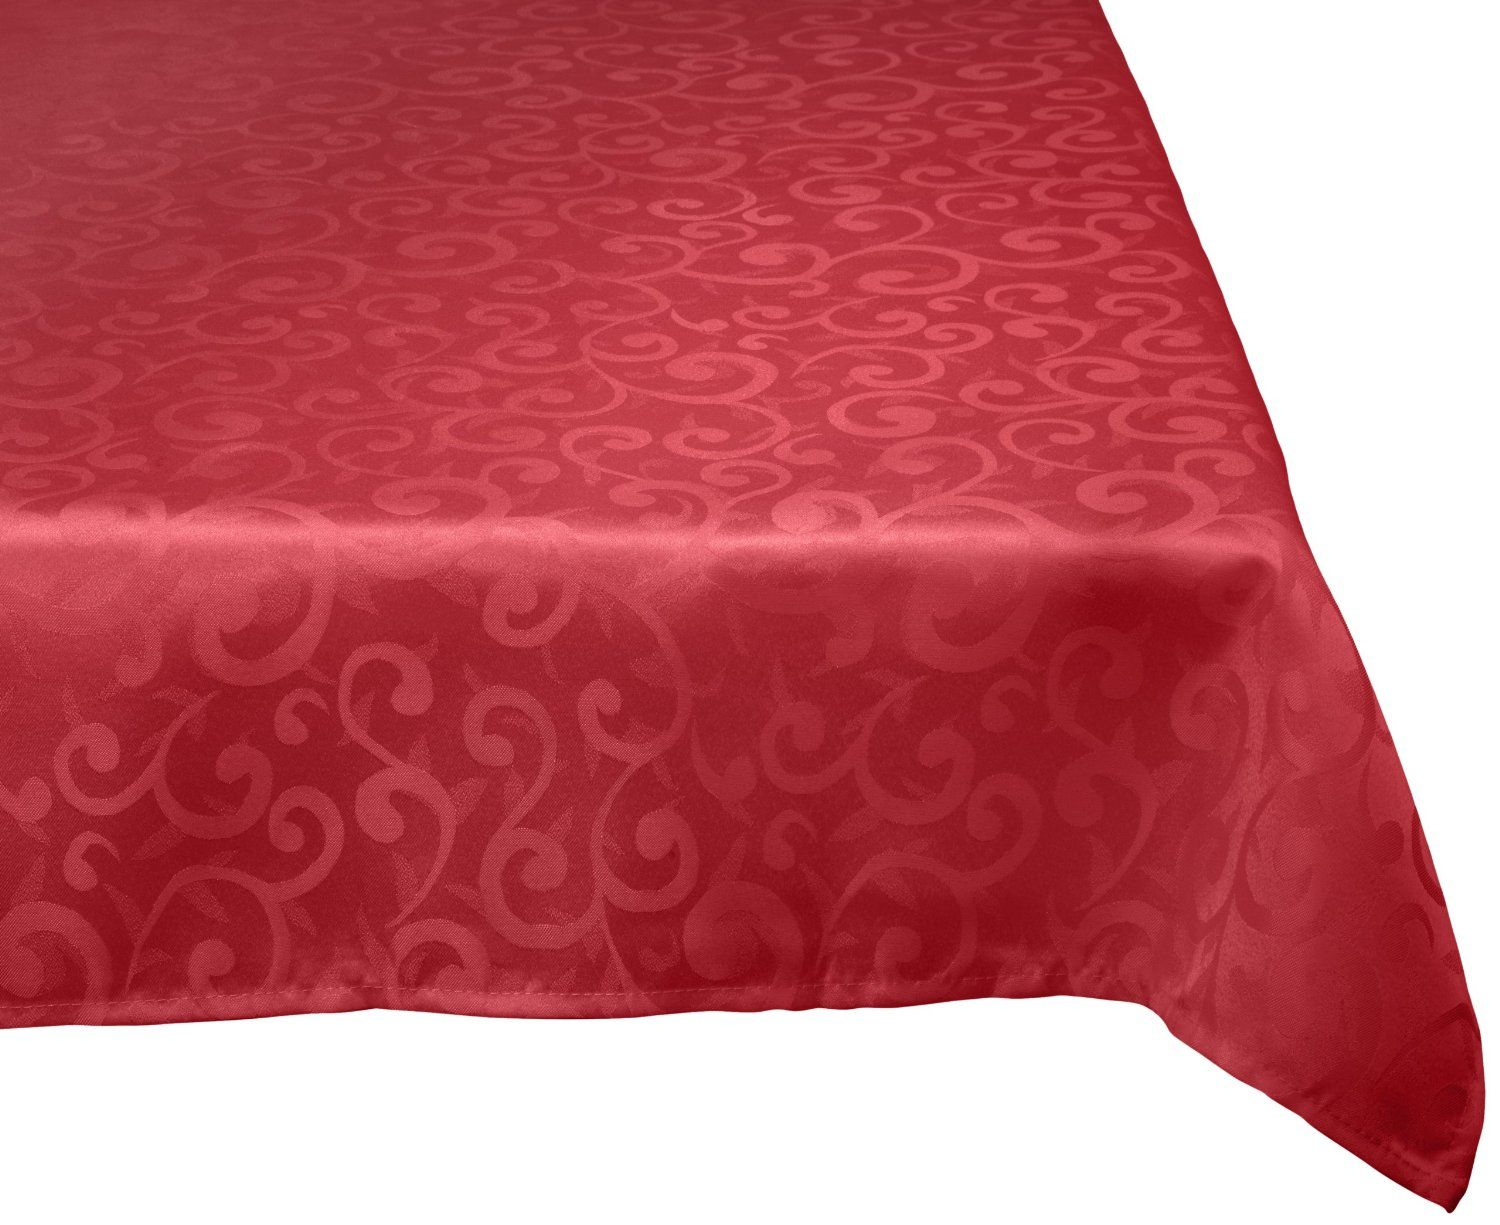 Amazon.com   DII 100% Polyester, Damask, Machine Washable Tablecloth Wine  52x70